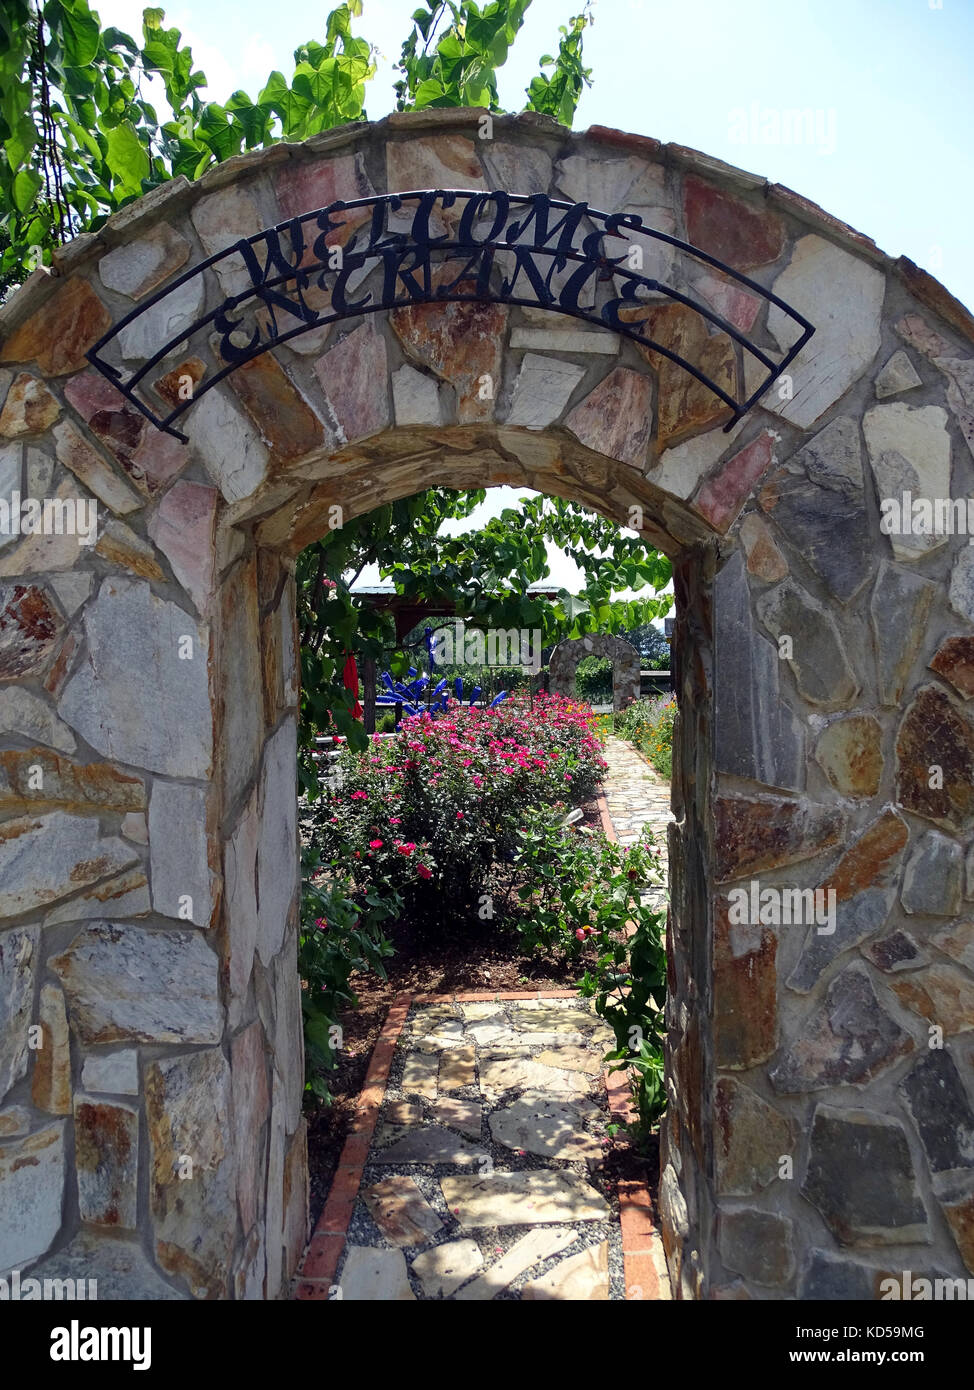 A stone archway serving as an entrance to a winery which is used to welcome guests - Stock Image